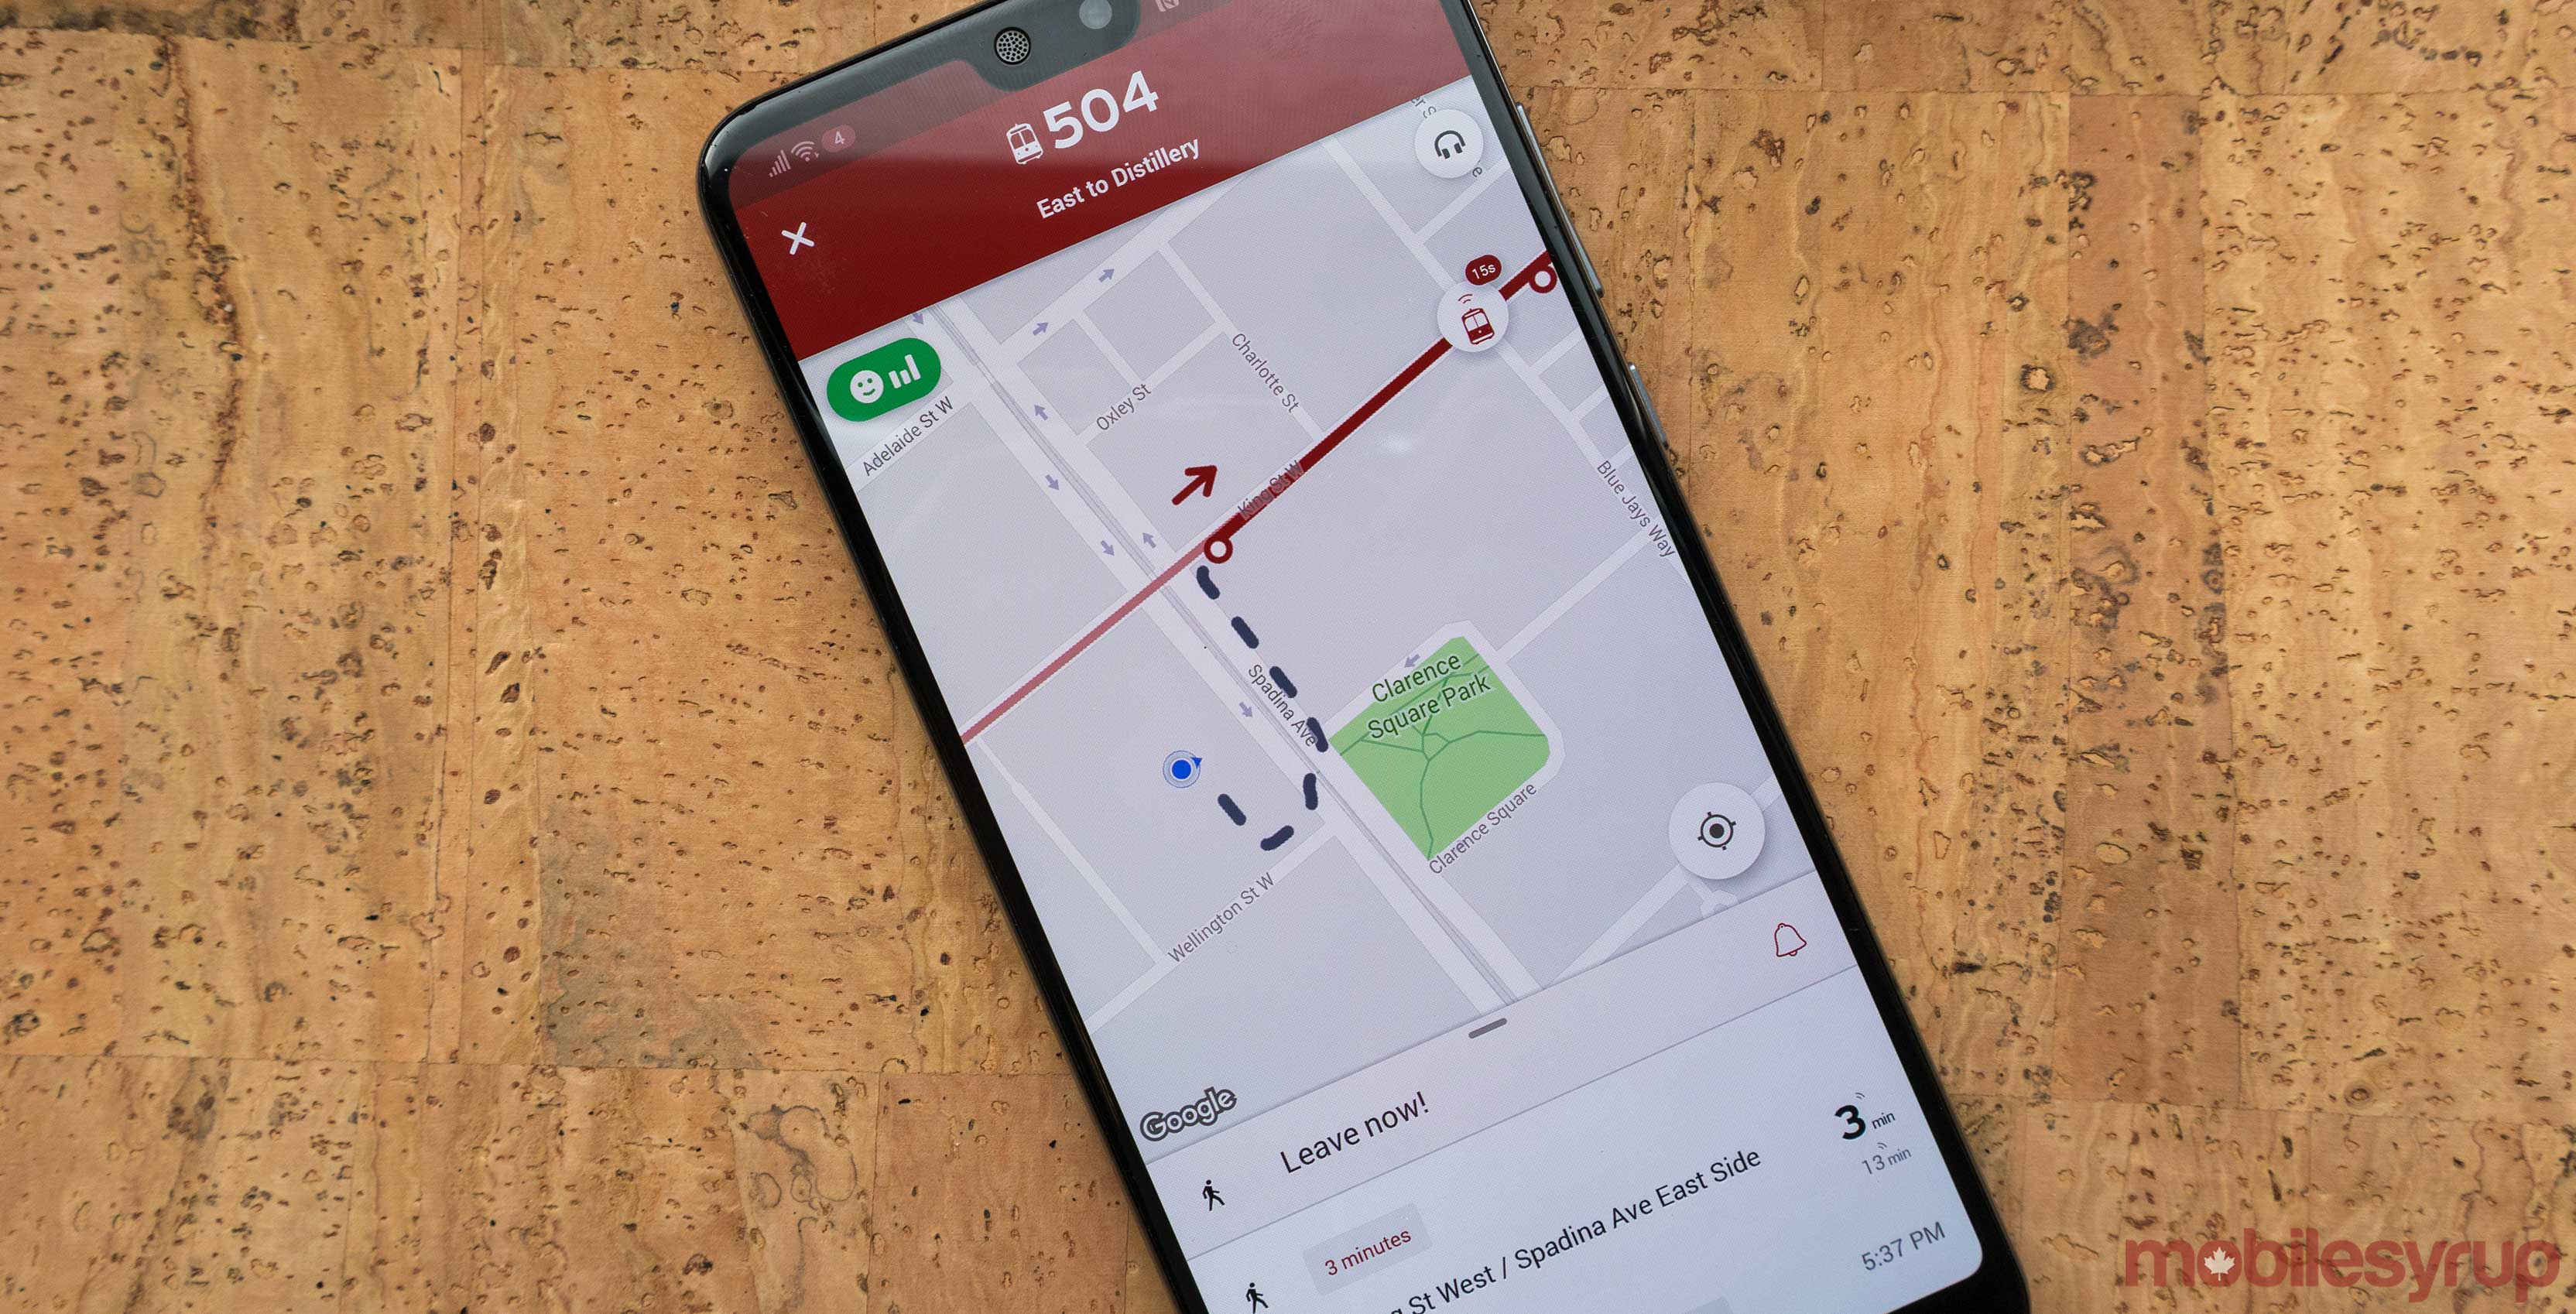 Navigation app Transit is becoming the Waze of public